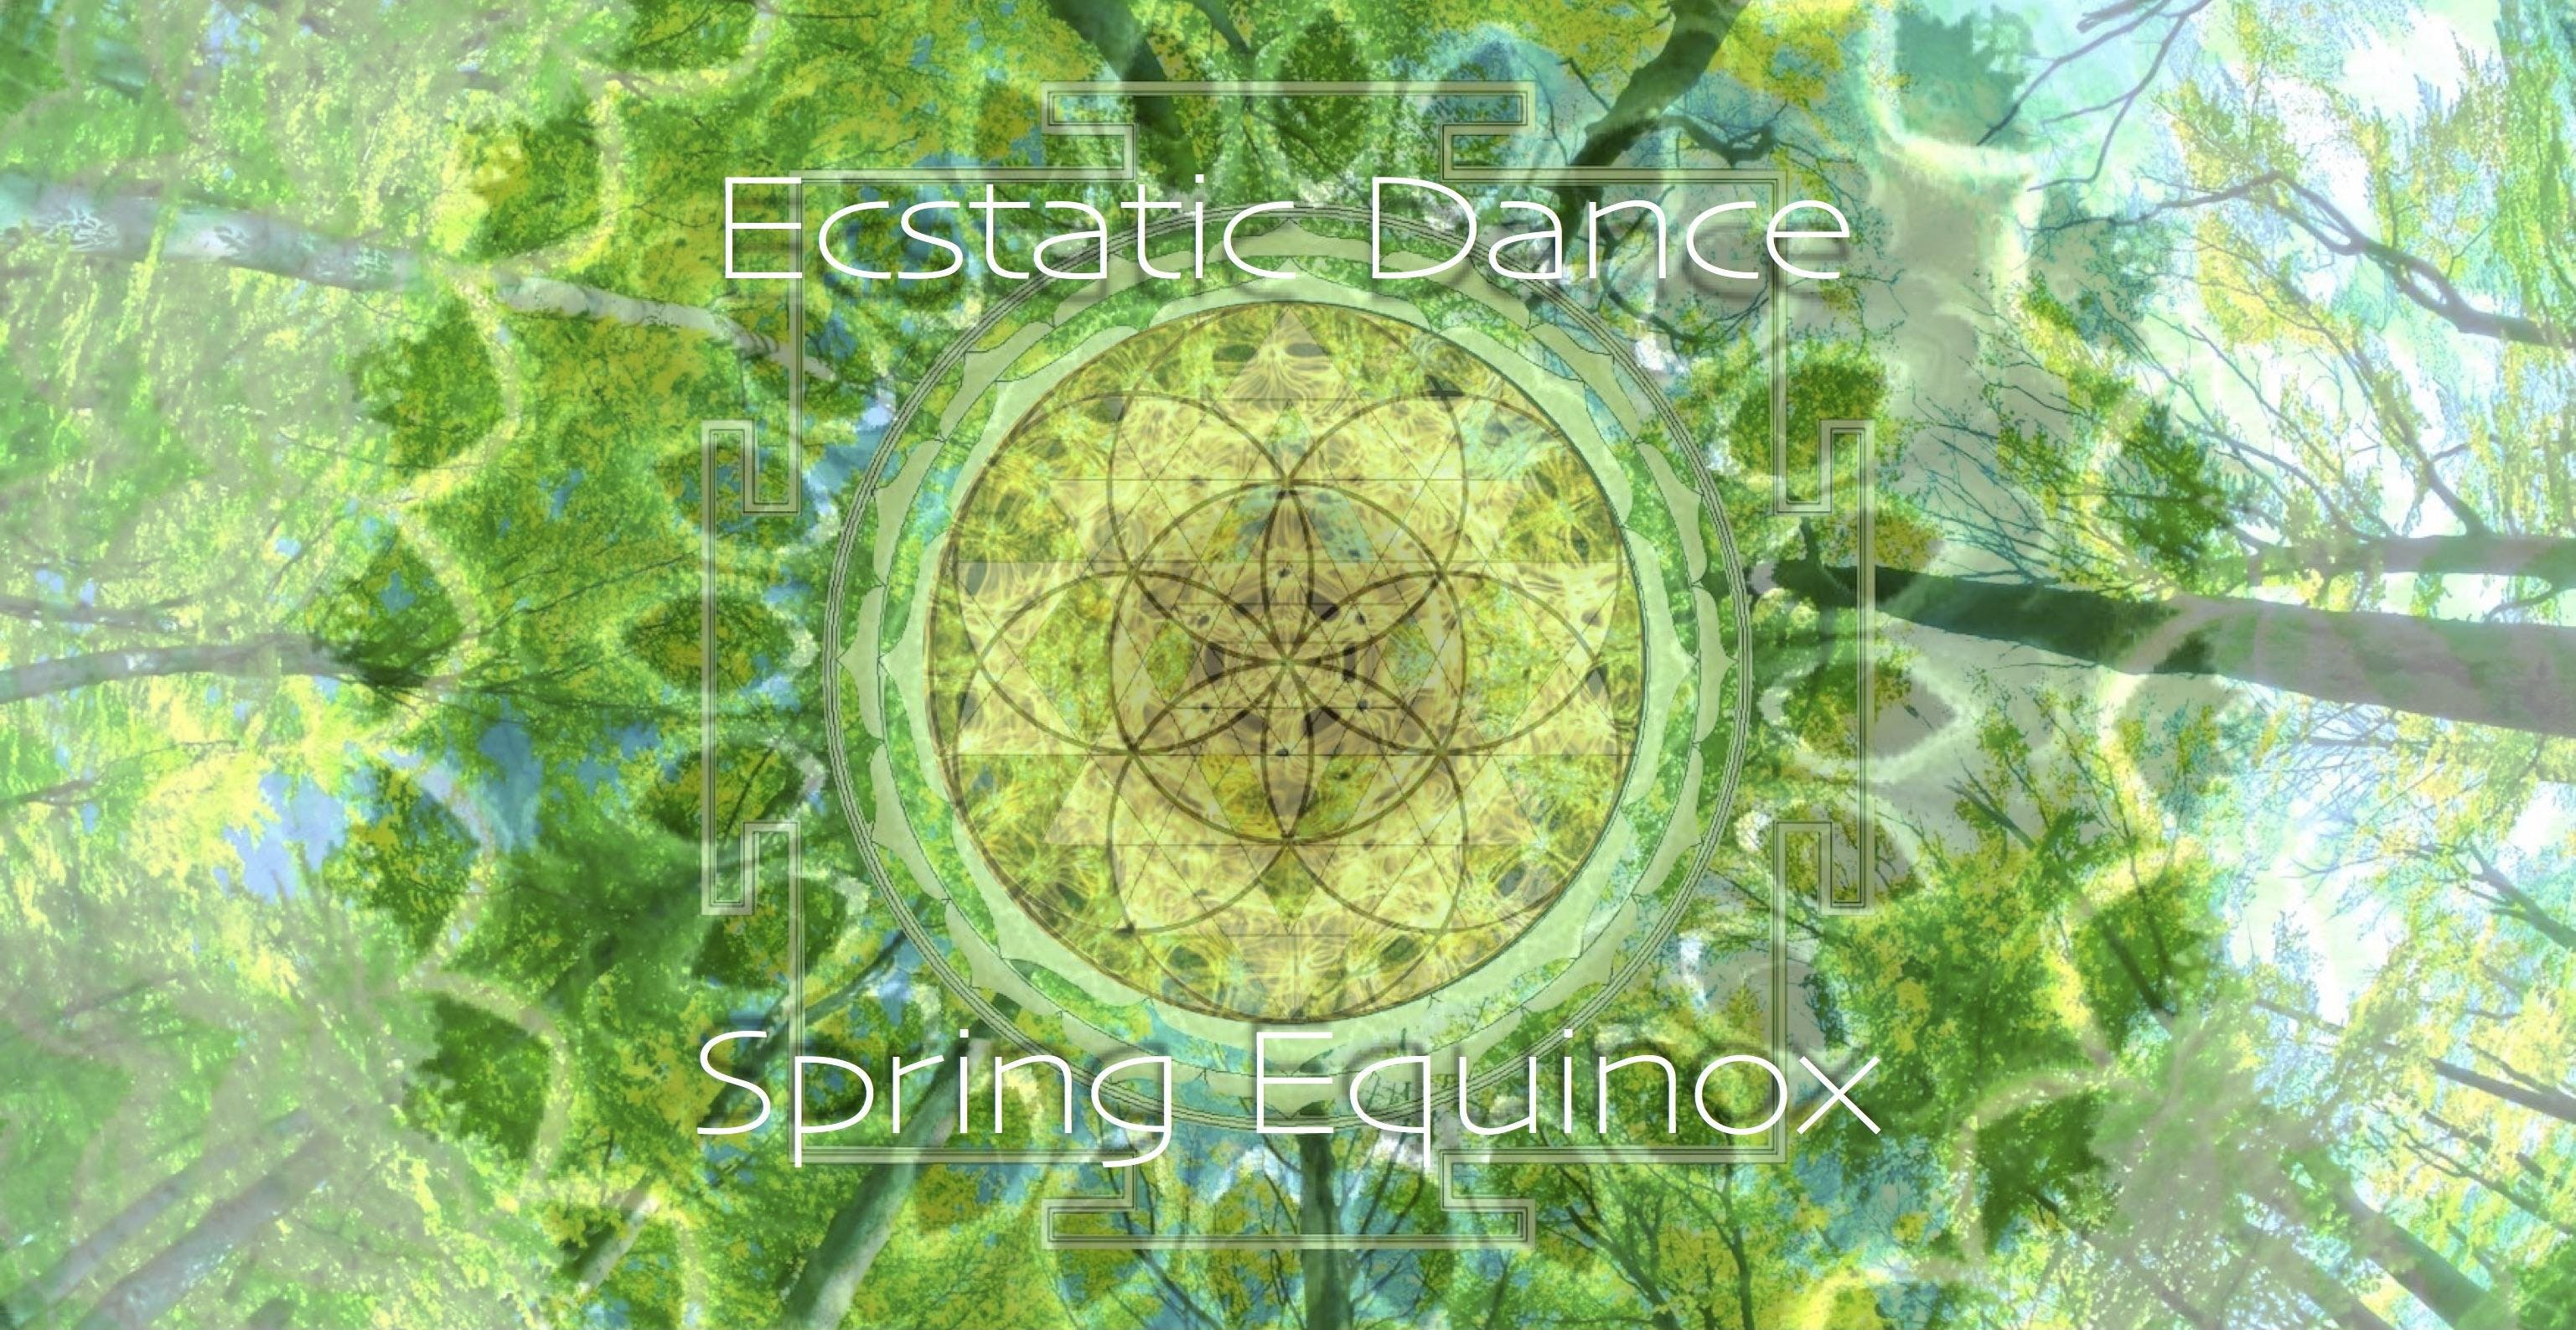 Ecstatic Dance Spring Equinox